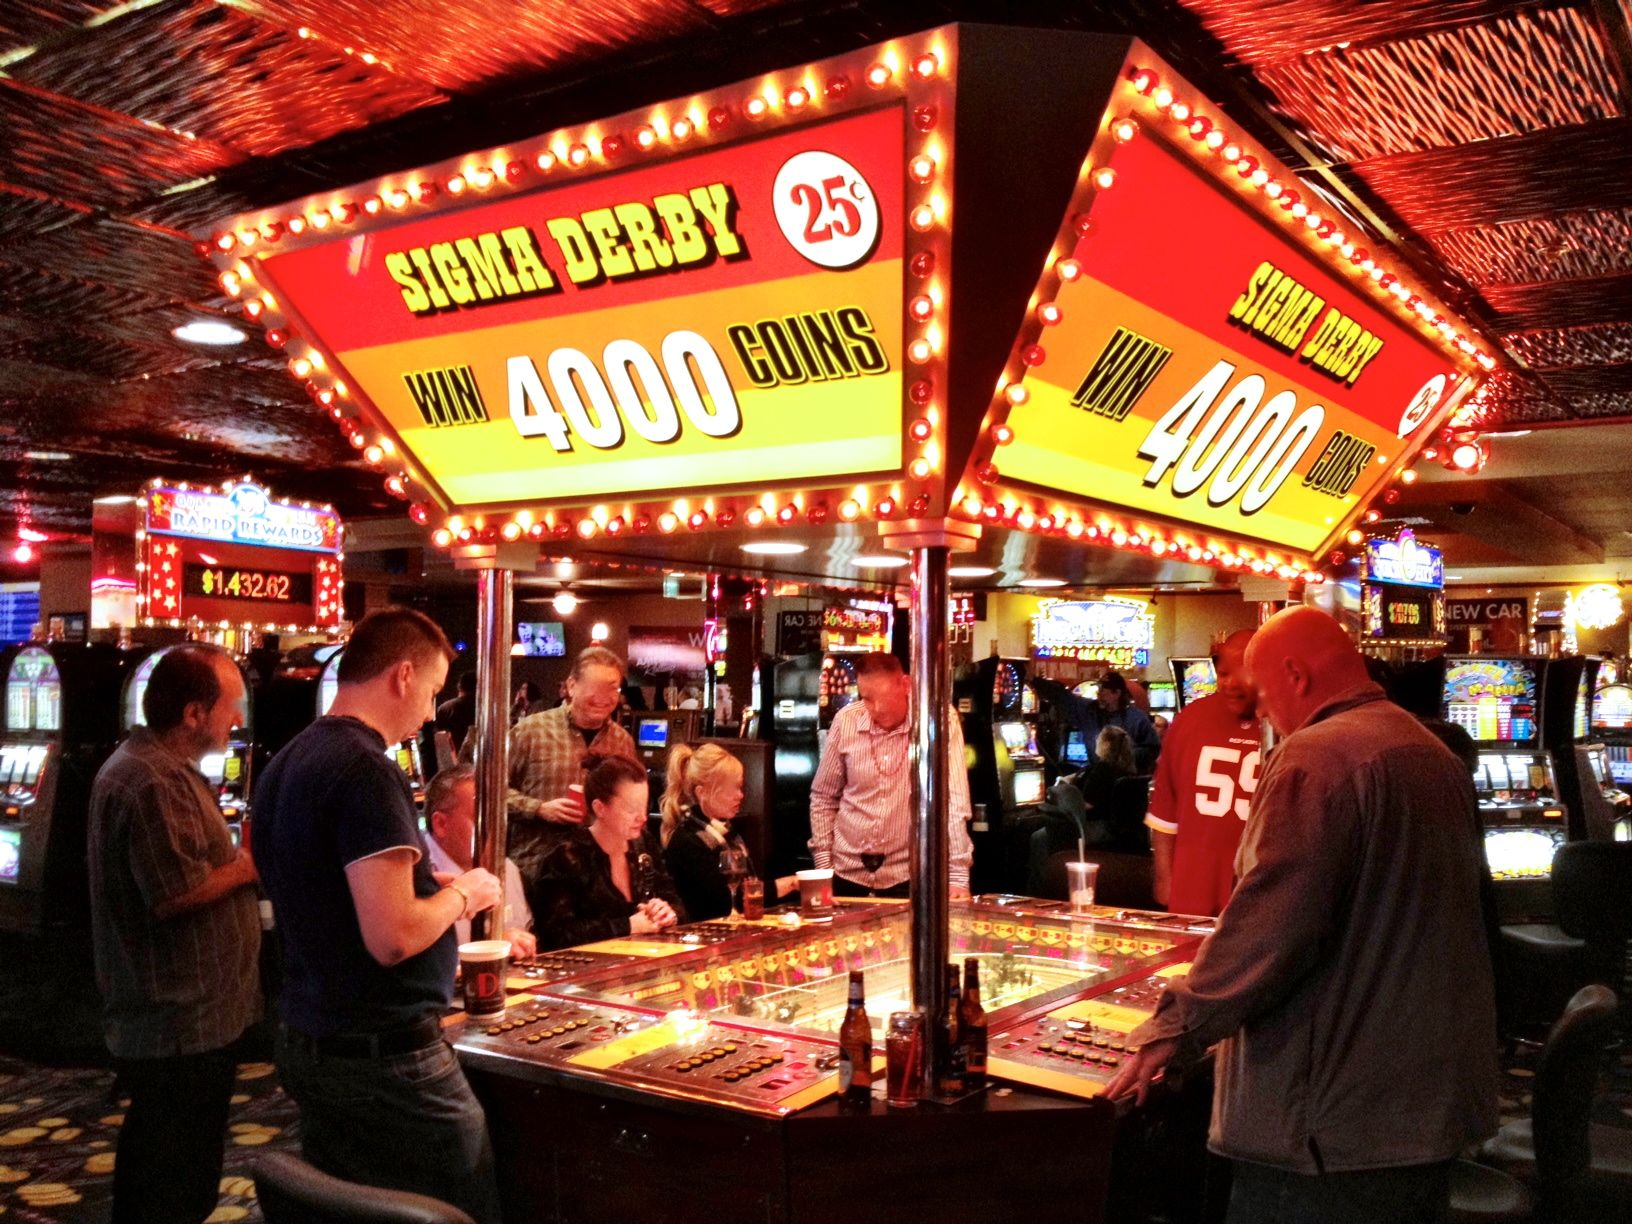 Something about that Slot Machine Horse Racing Game  Discovering Sigma Derby While in Downtown